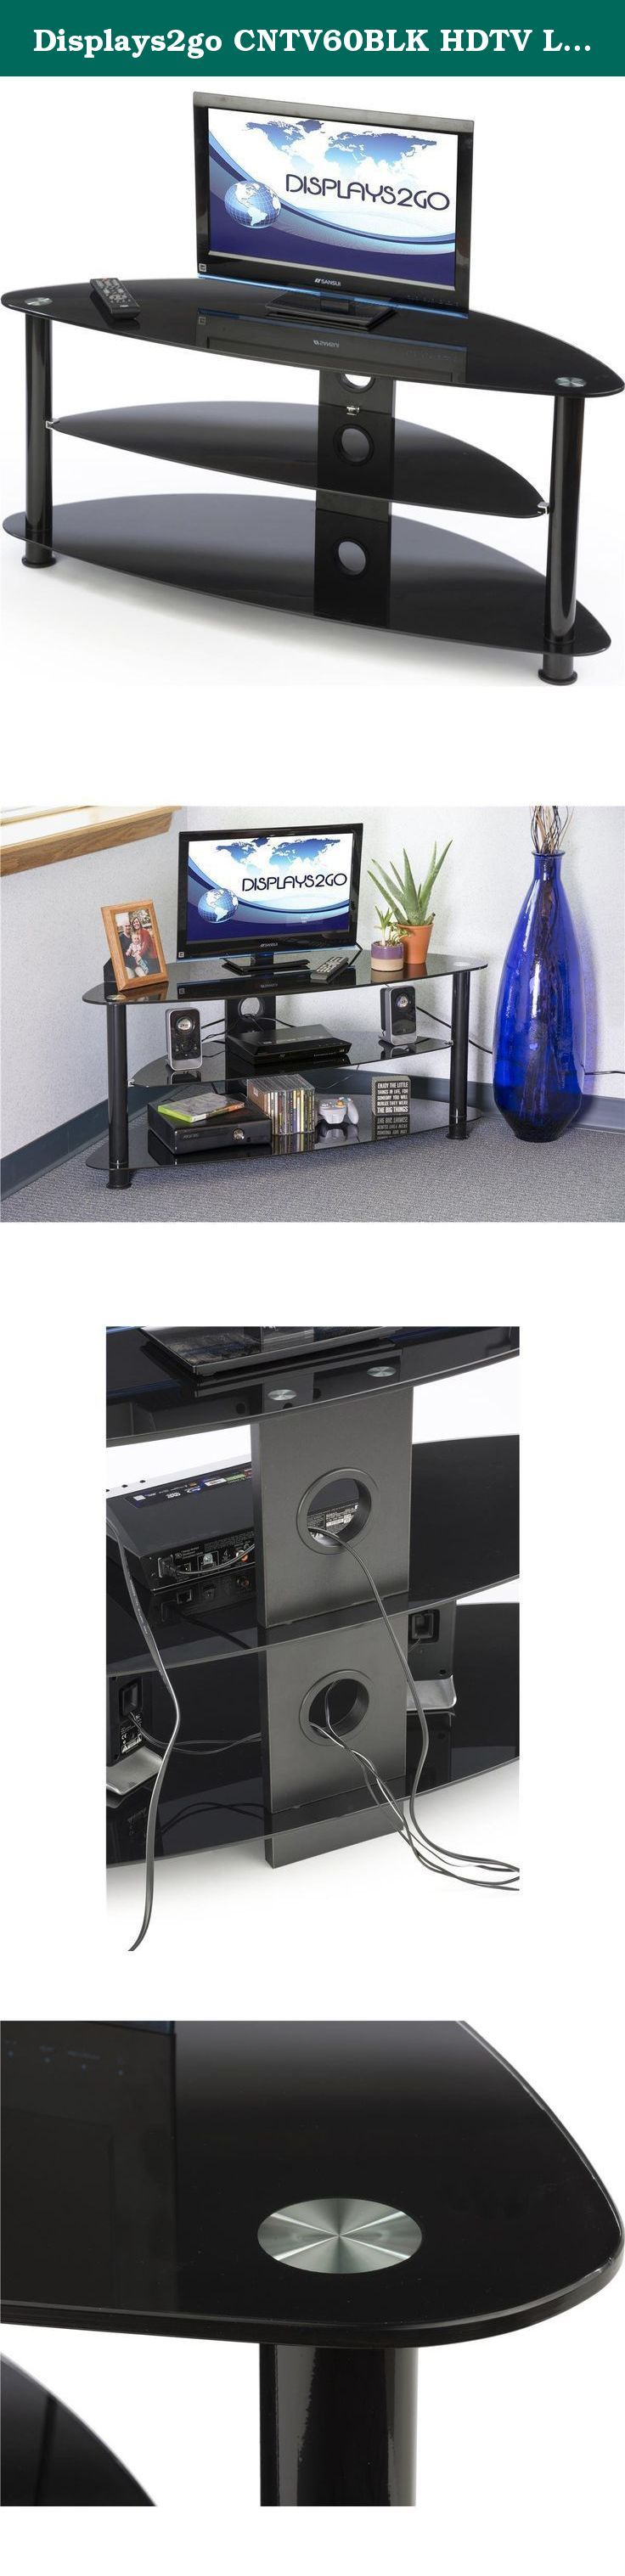 """Displays2go CNTV60BLK HDTV Living Room Entertainment Center, Up to 60-Inch TVs, Corner Unit, Tempered Glass Shelves (Black). This HDTV glass entertainment center holds TVs up to 60"""" in size. This TV stand features 3 tempered glass shelves, with the top shelf 8mm thick and a maximum weight limit of 154 lbs. This angled entertainment center is perfect for use as a corner unit. The bottom 2 shelves are 5mm thick. The entire unit secures together via heavy duty plastic poles and standoffs…"""